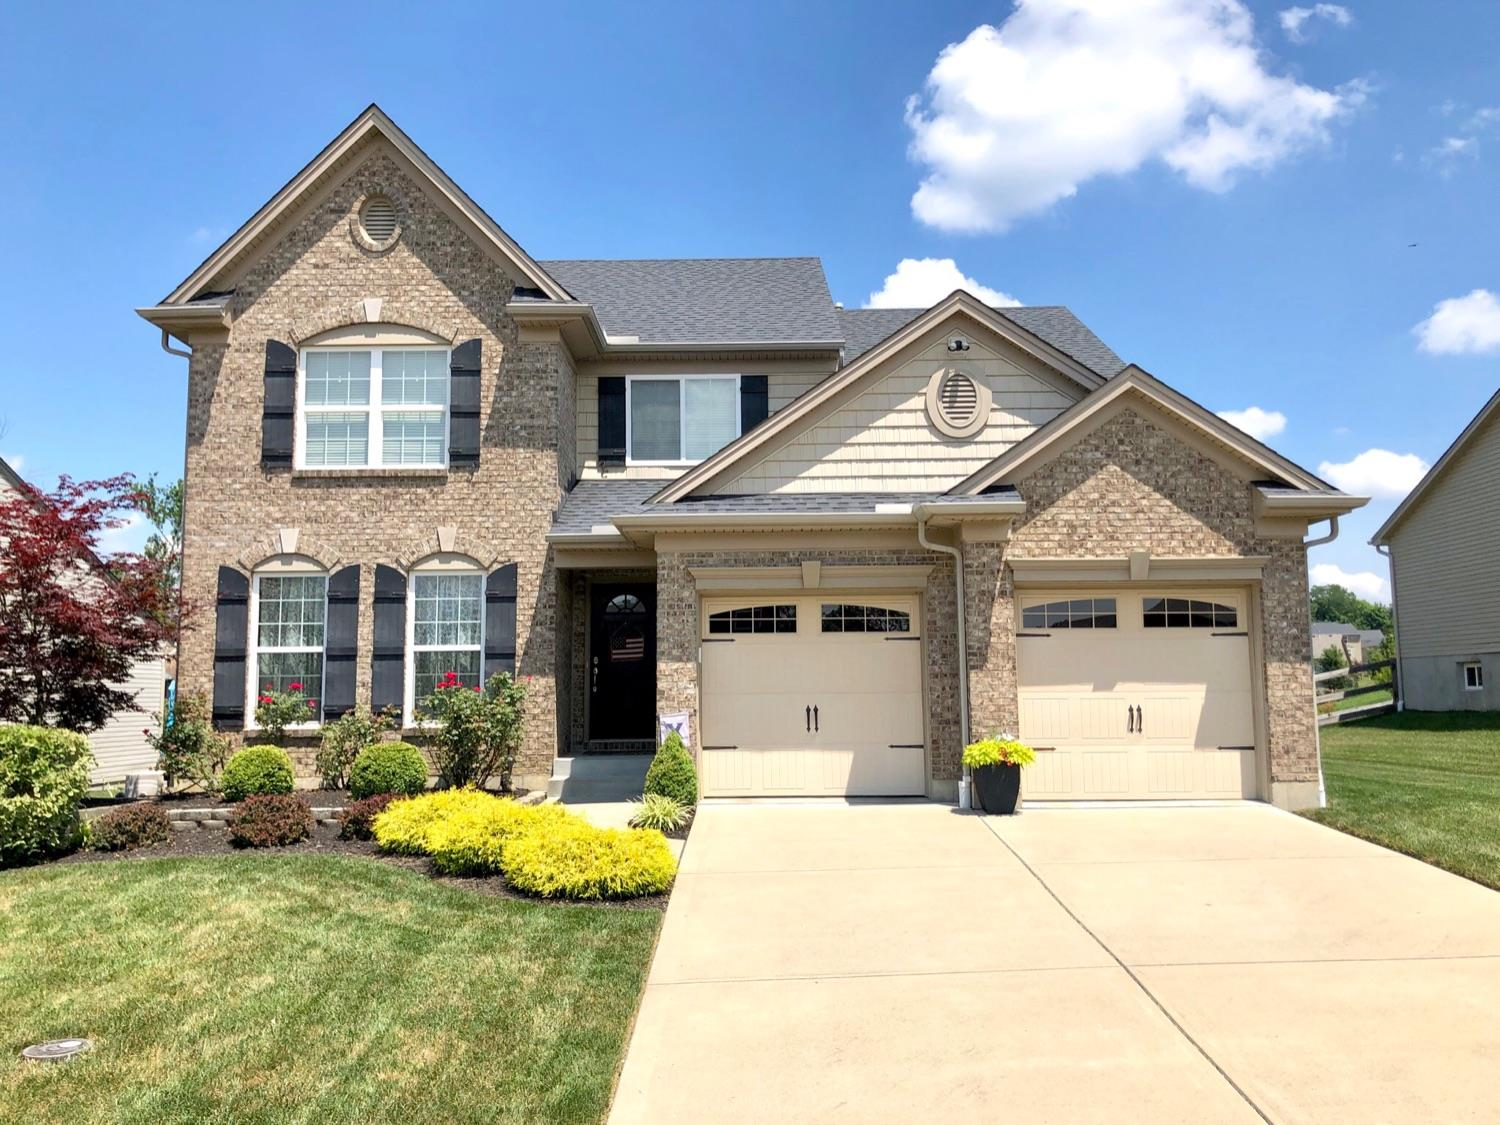 8849 Coronet Ct Whitewater Twp., OH